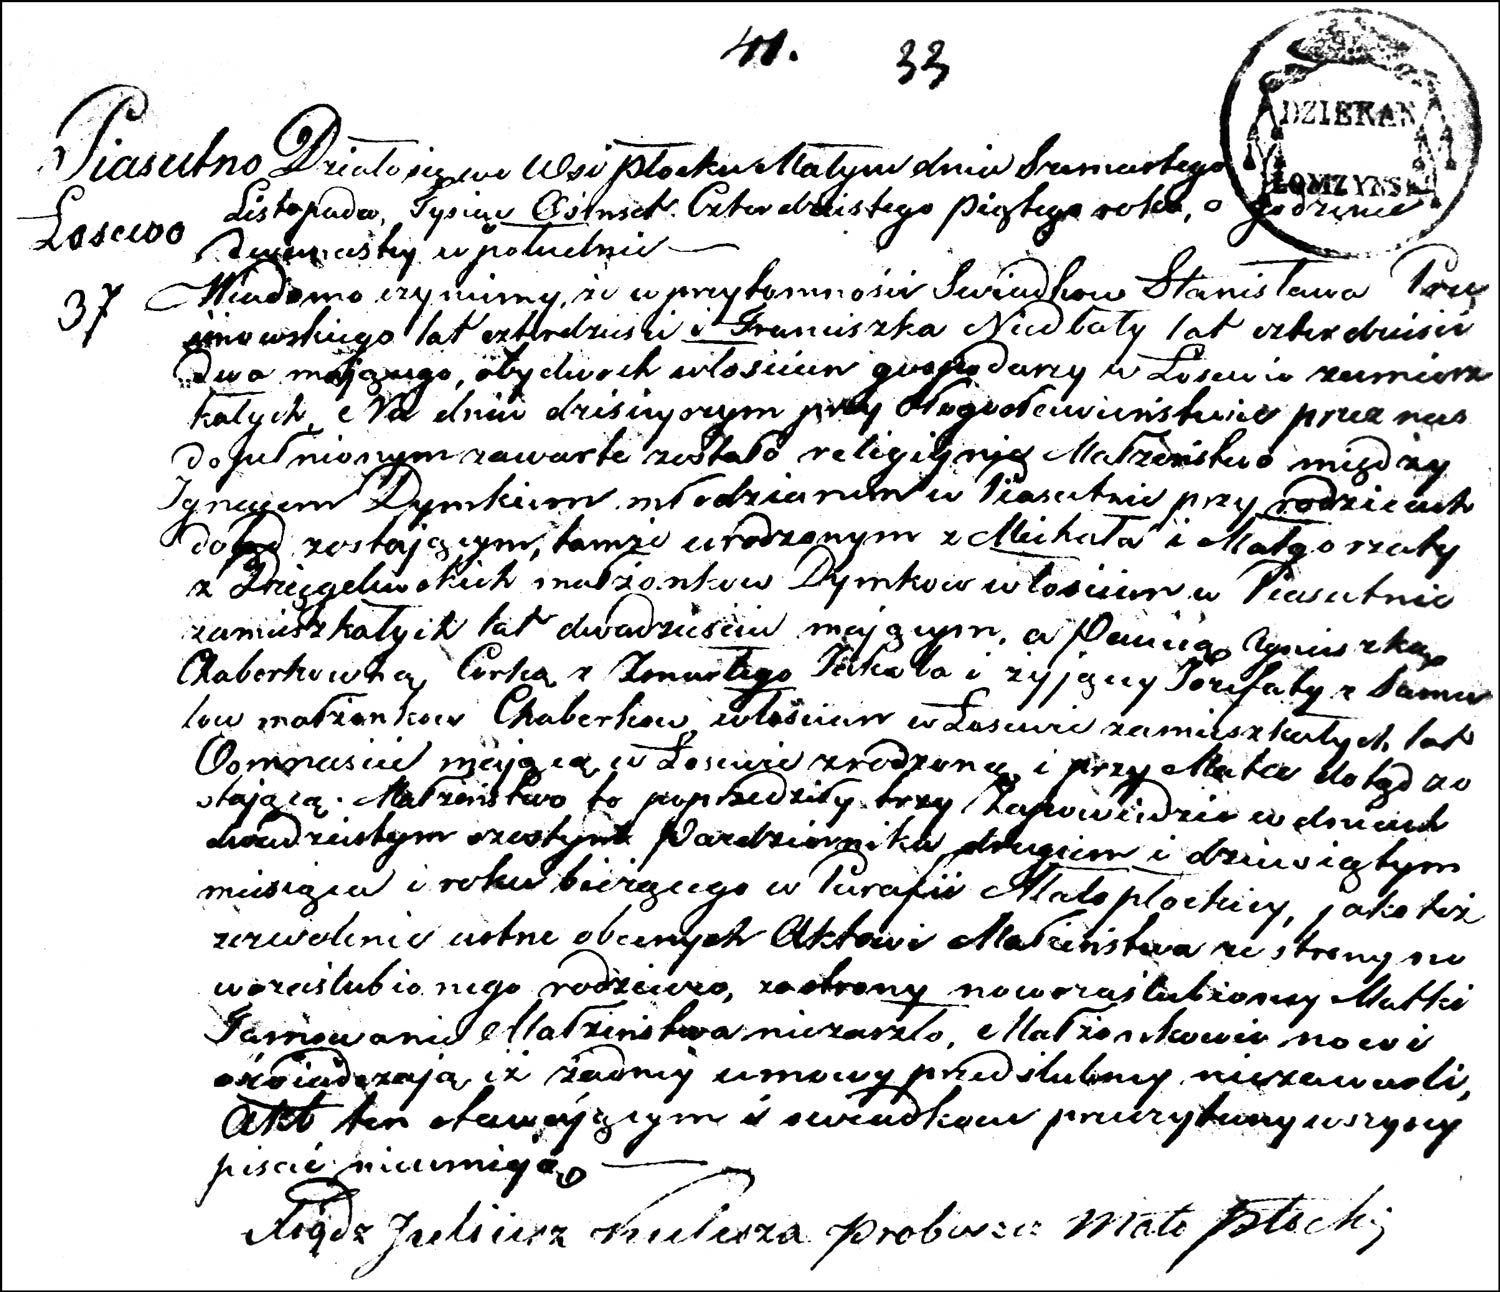 The Marriage Record of Ignacy Dymek and Agnieszka Chaberek – 1845